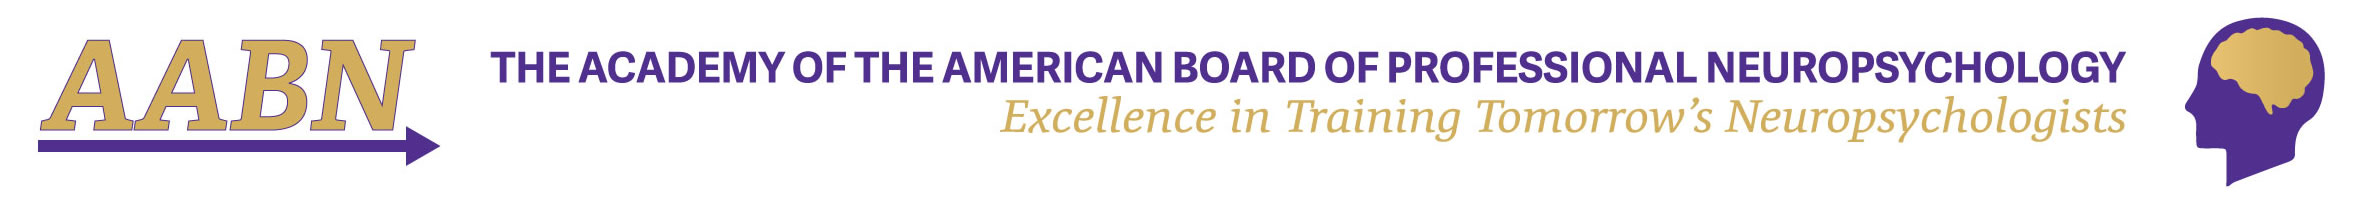 AABN The Academy of the American Board of Professional Neuropsychology